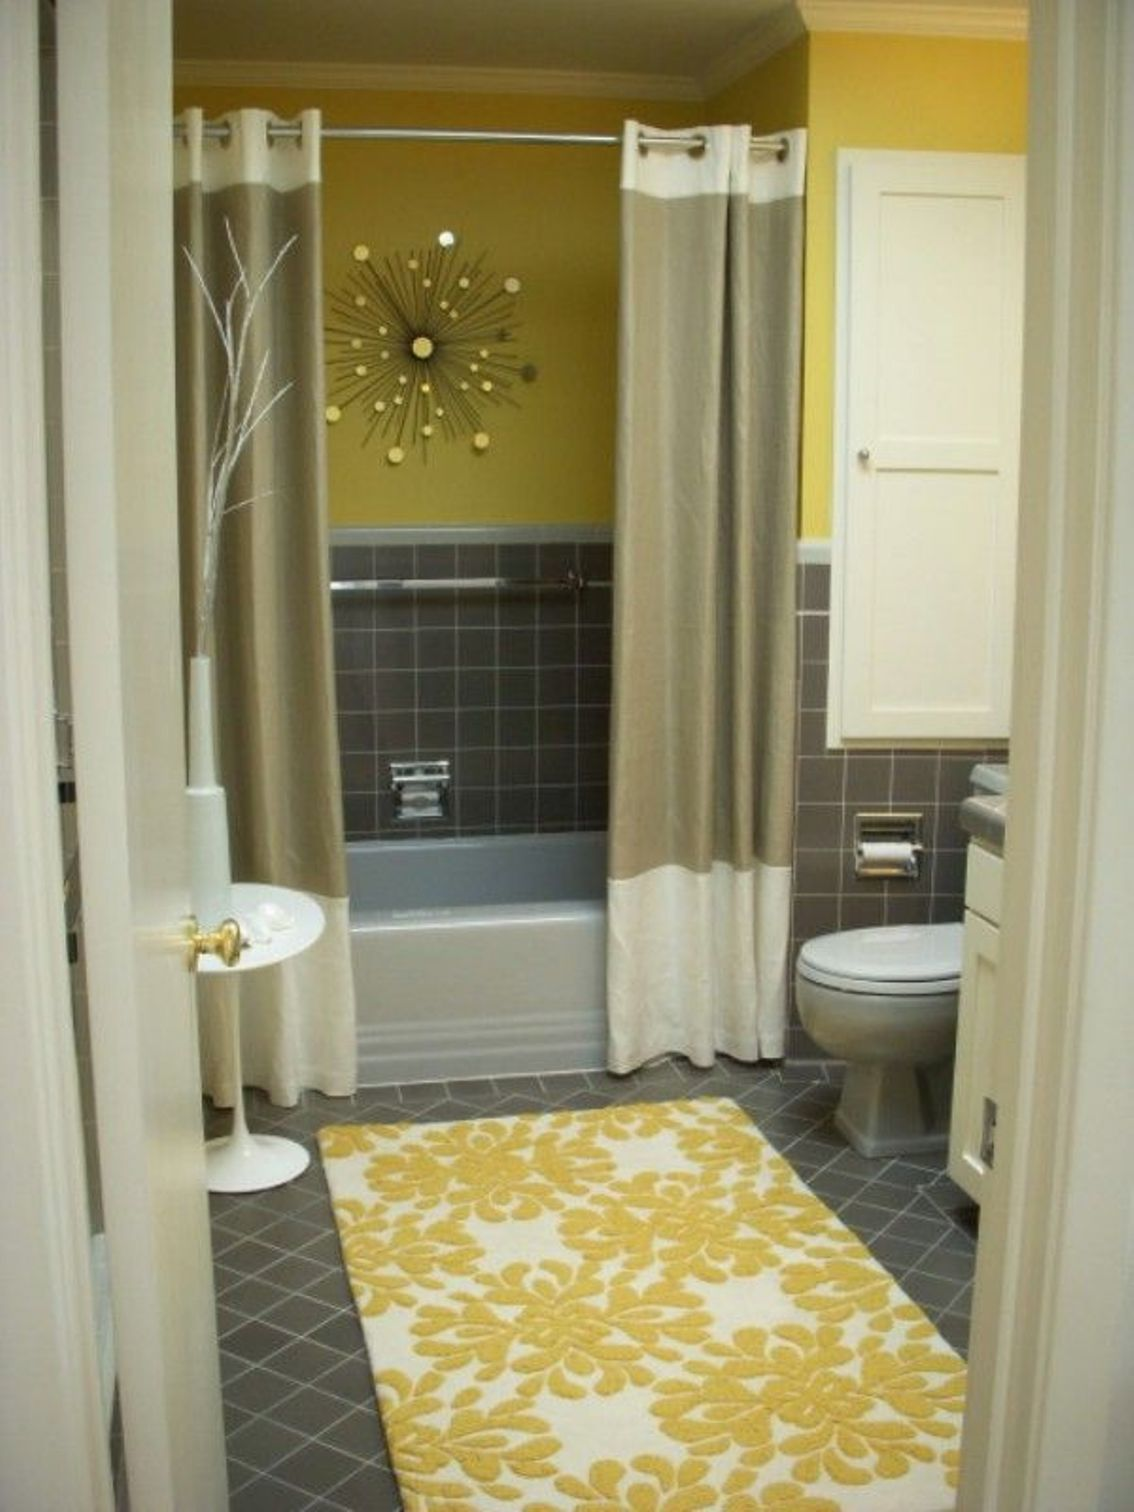 Gallery Website Small Bathroom Decorating Ideas With Colors And Shower Curtain With Contemporary Wall Art In The Shower